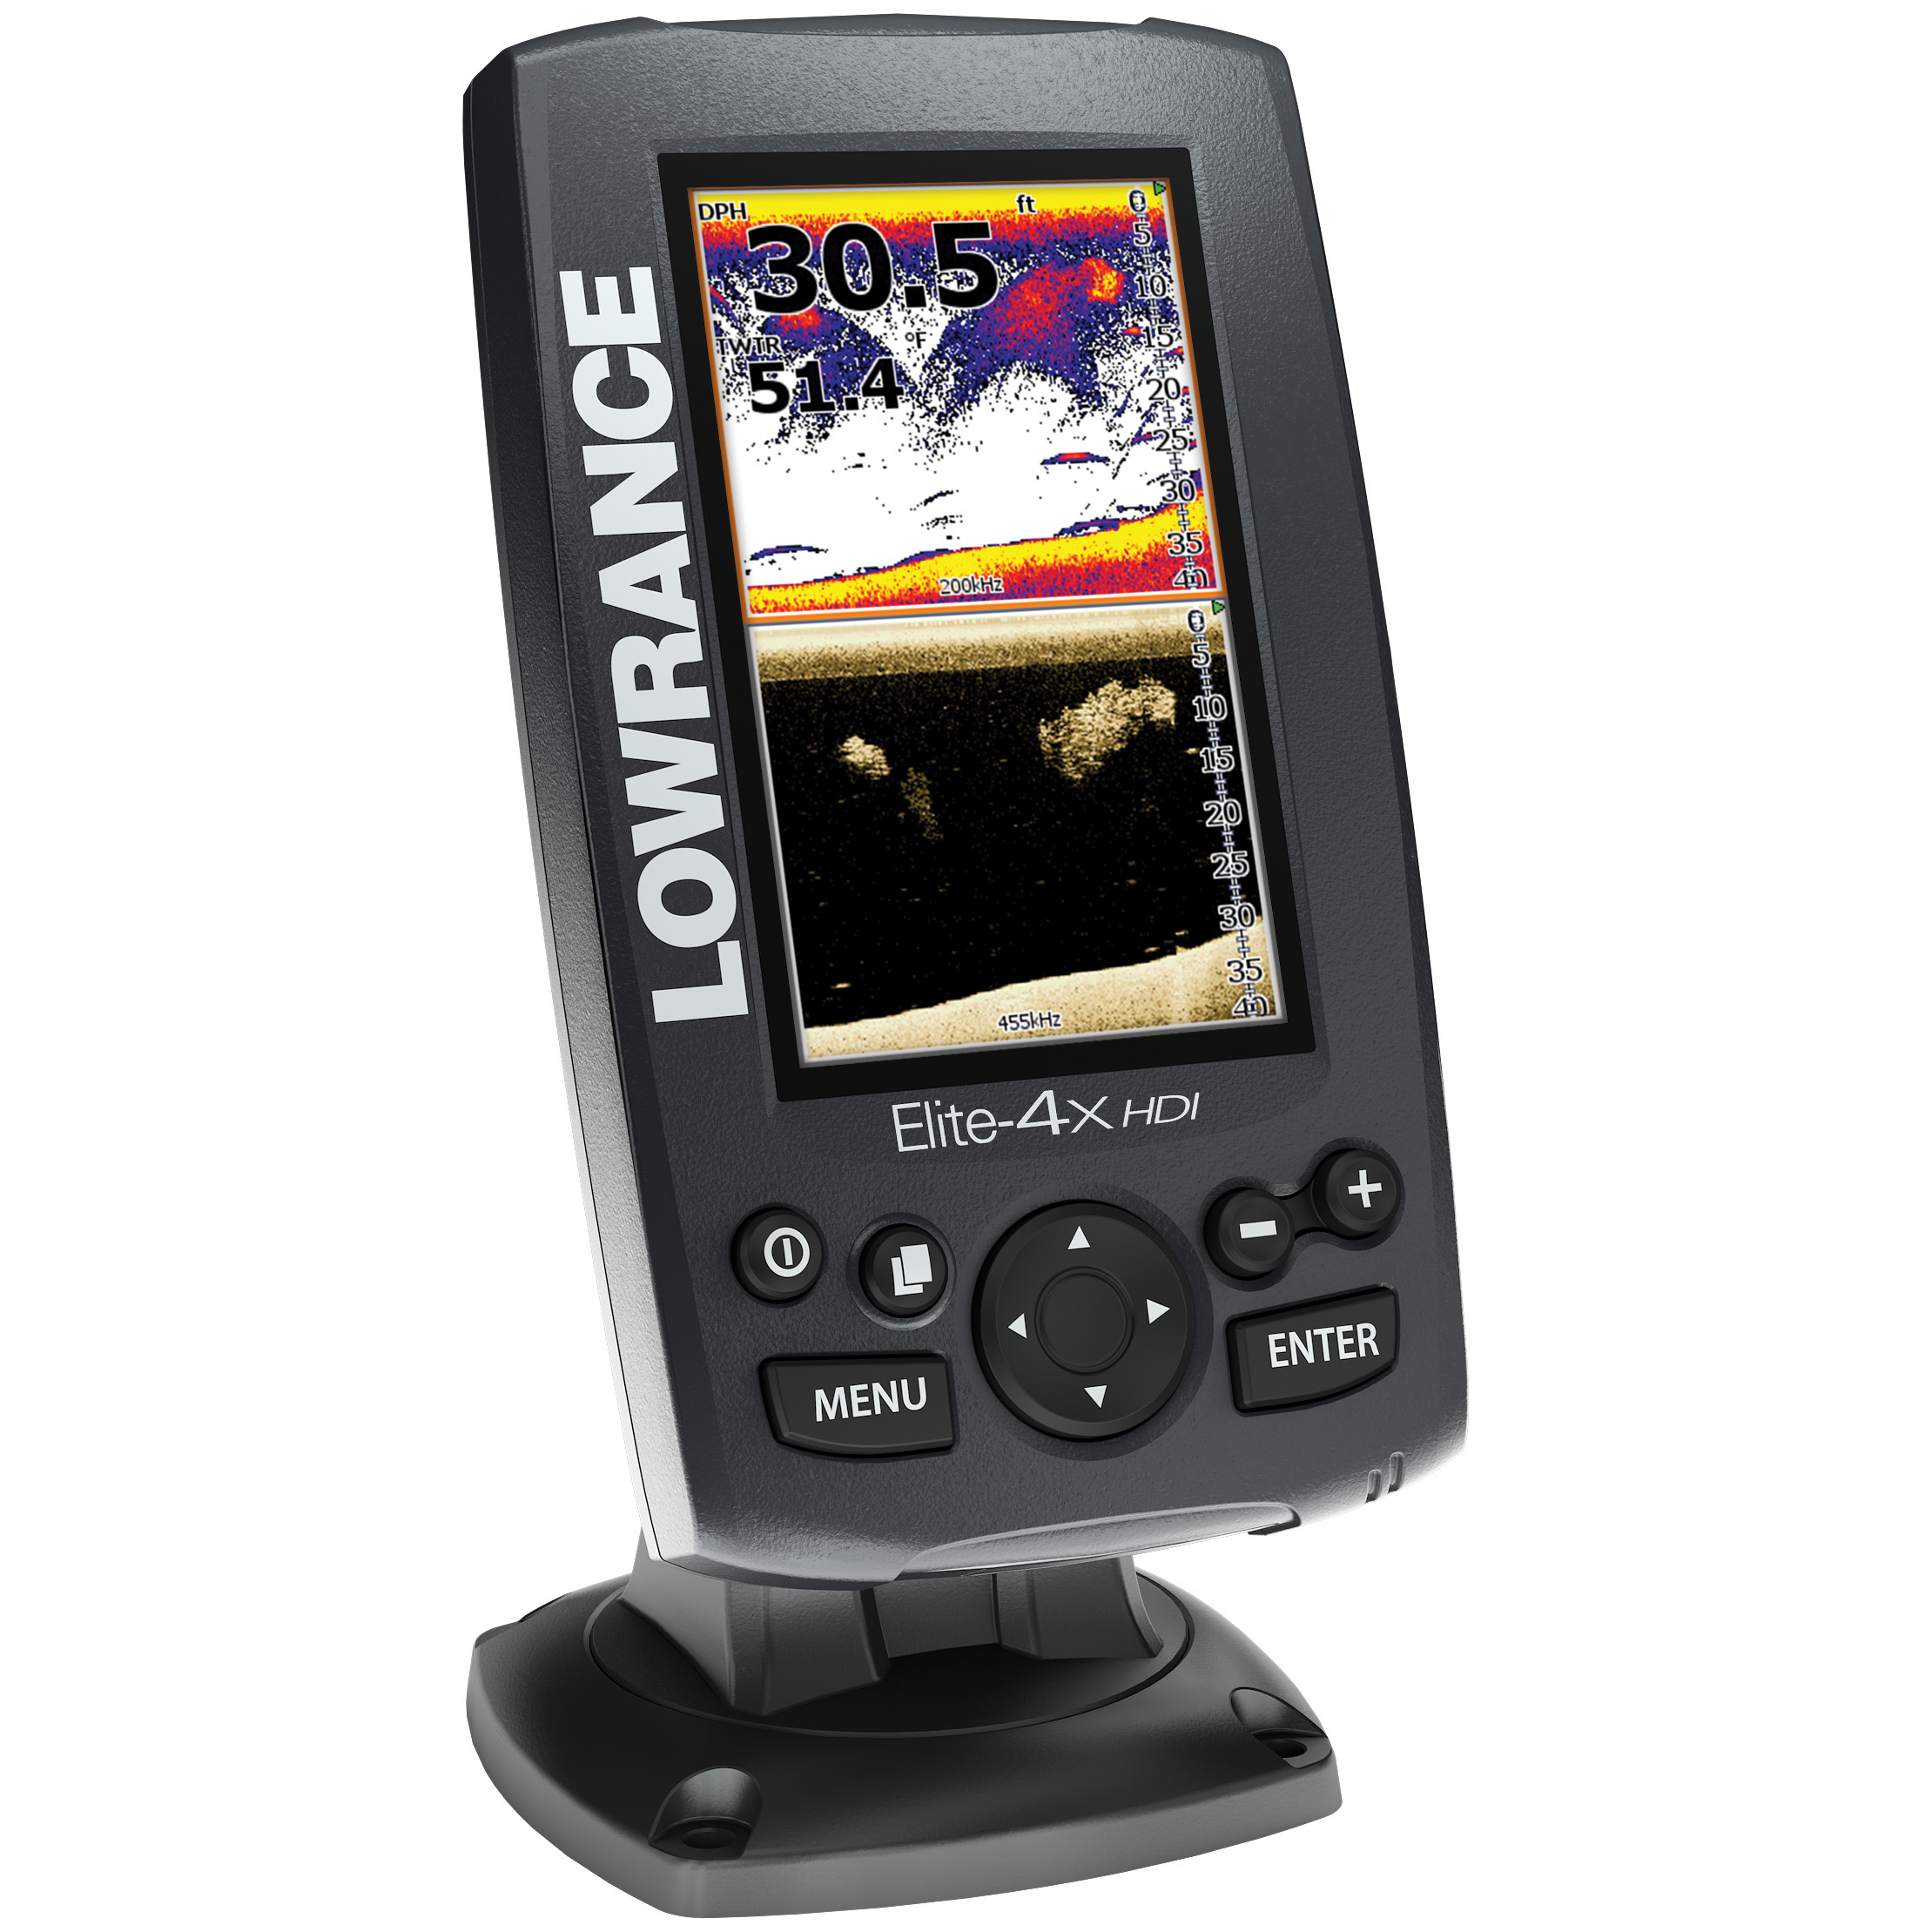 "Lowrance Elite-4x HDI Fishfinder without Transducer. Introducing Hybrid Dual Imaging-the future of fish finding. Hybrid Dual Imaging (HDI) combines the target separation and sonar excellence of Broadband Sounder technology with the structure and bottom contour-finding technology of DownScan Imaging... and the results are brilliant. Fish look like fish. Rocks look like rocks. Structures are perfectly defined. You can even track your own lure!Built into the new Lowrance HDI Skimmer transducer design, Broadband Sounder technology is ideal for marking fish arches and tracking lure action, while DownScan Imaging provides easy-to-understand, picture-like views of structure and bottom detail. With the exclusive Lowrance DownScan Overlay feature, you can combine the DownScan Imaging view with the Broadband Sounder recording for a stunning presentation that separates and clearly exposes fish targets from surrounding structure. It's all displayed on a beautiful, full-color 4.3-inch screen, with a wealth of features to show you what's below with more clarity than you ever thought possible.The Elite-4x HDI Fishfinder without Transducer includes the Fishfinder head unit only, making it perfect if you already have an Elite HDI Fishfinder / Sonar set-up and would like a ""second station"" to view sonar results. Details:Lowrance-exclusive, high-resolution, 4.3-inch, LED-backlit display with 70% more pixels and 36% more usable screen area than previous Elite-4 series displays TrackBack function lets you enjoy immediate scroll-back of imaging sonar history to review covered water and pinpoints spots... saves you time and fuel you'd normally spend trying to retrace your path Advanced Signal Processing (ASP) reduces the need to manually adjust settings to see fish, structure and bottom detail more clearly Multi-Window Display lets you quickly and easily choose from pre-set page layouts-including a three-panel view New easy-to-use page selector menu with quick acce - $144.99"